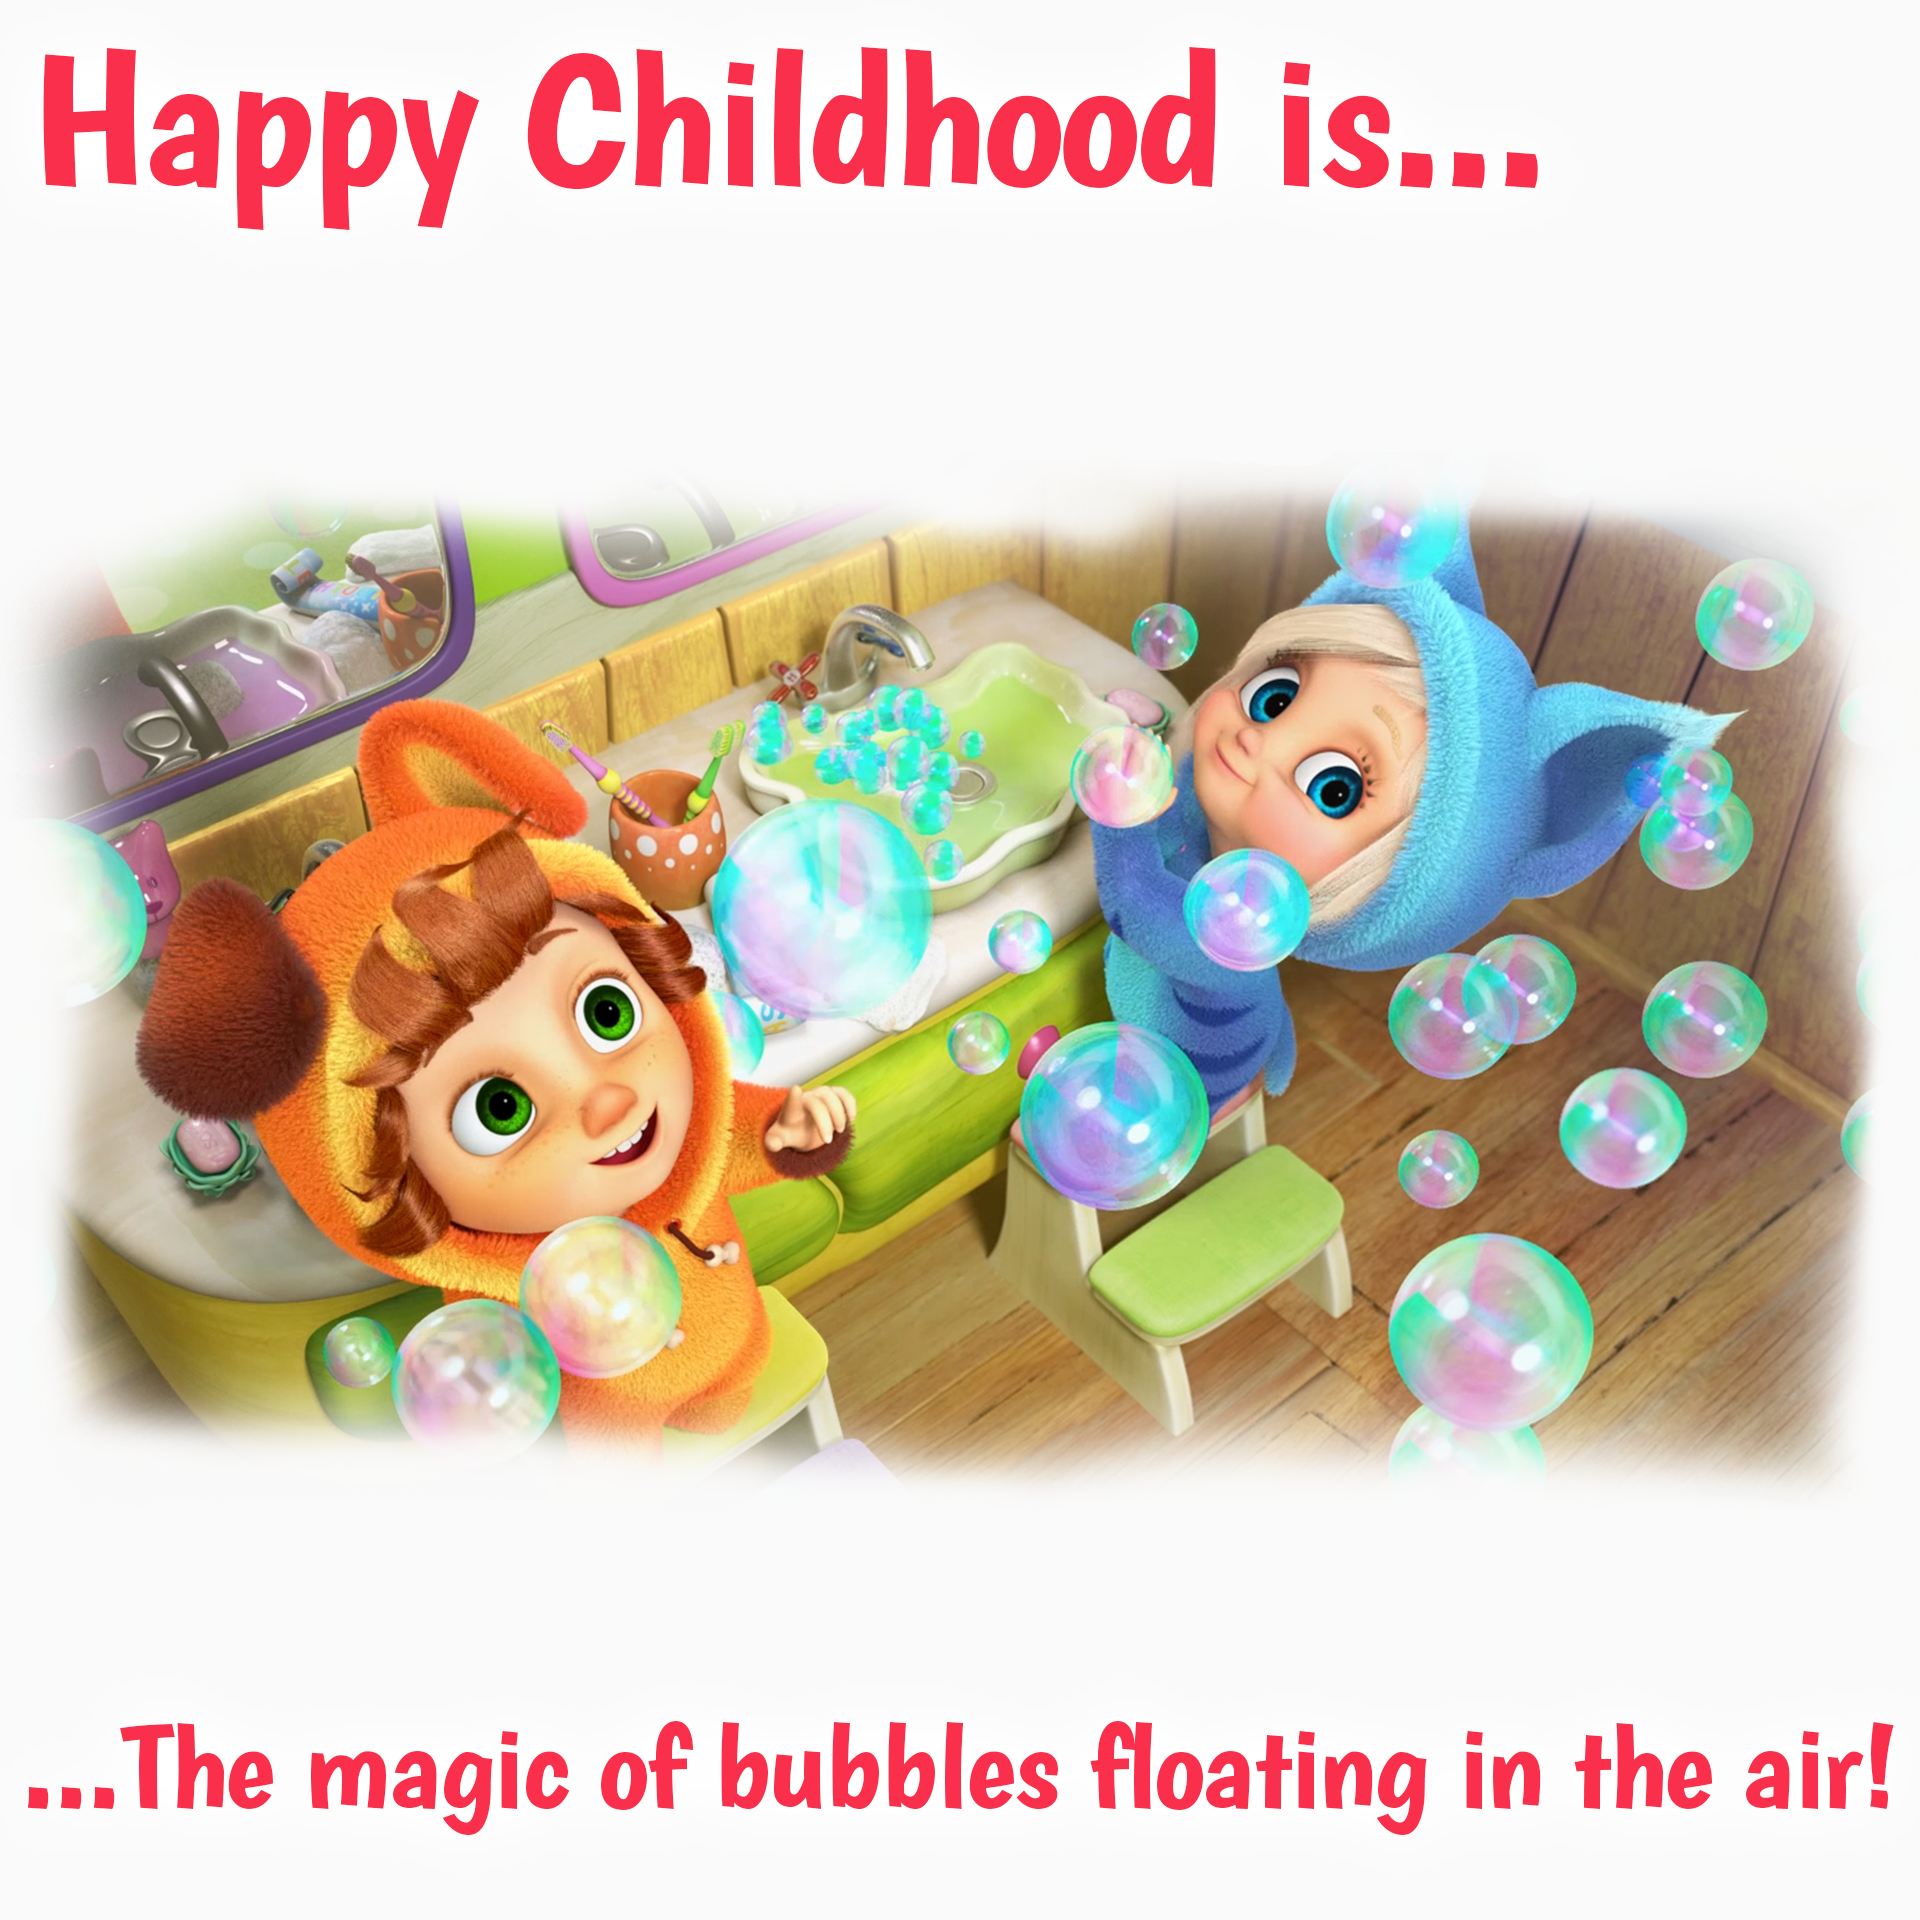 Blowing Bubbles Is A Fun Way To Spend A Warm Summer Day Summertime With Daveandava Dave And Ava Nursery Rhymes Collection Kids Songs